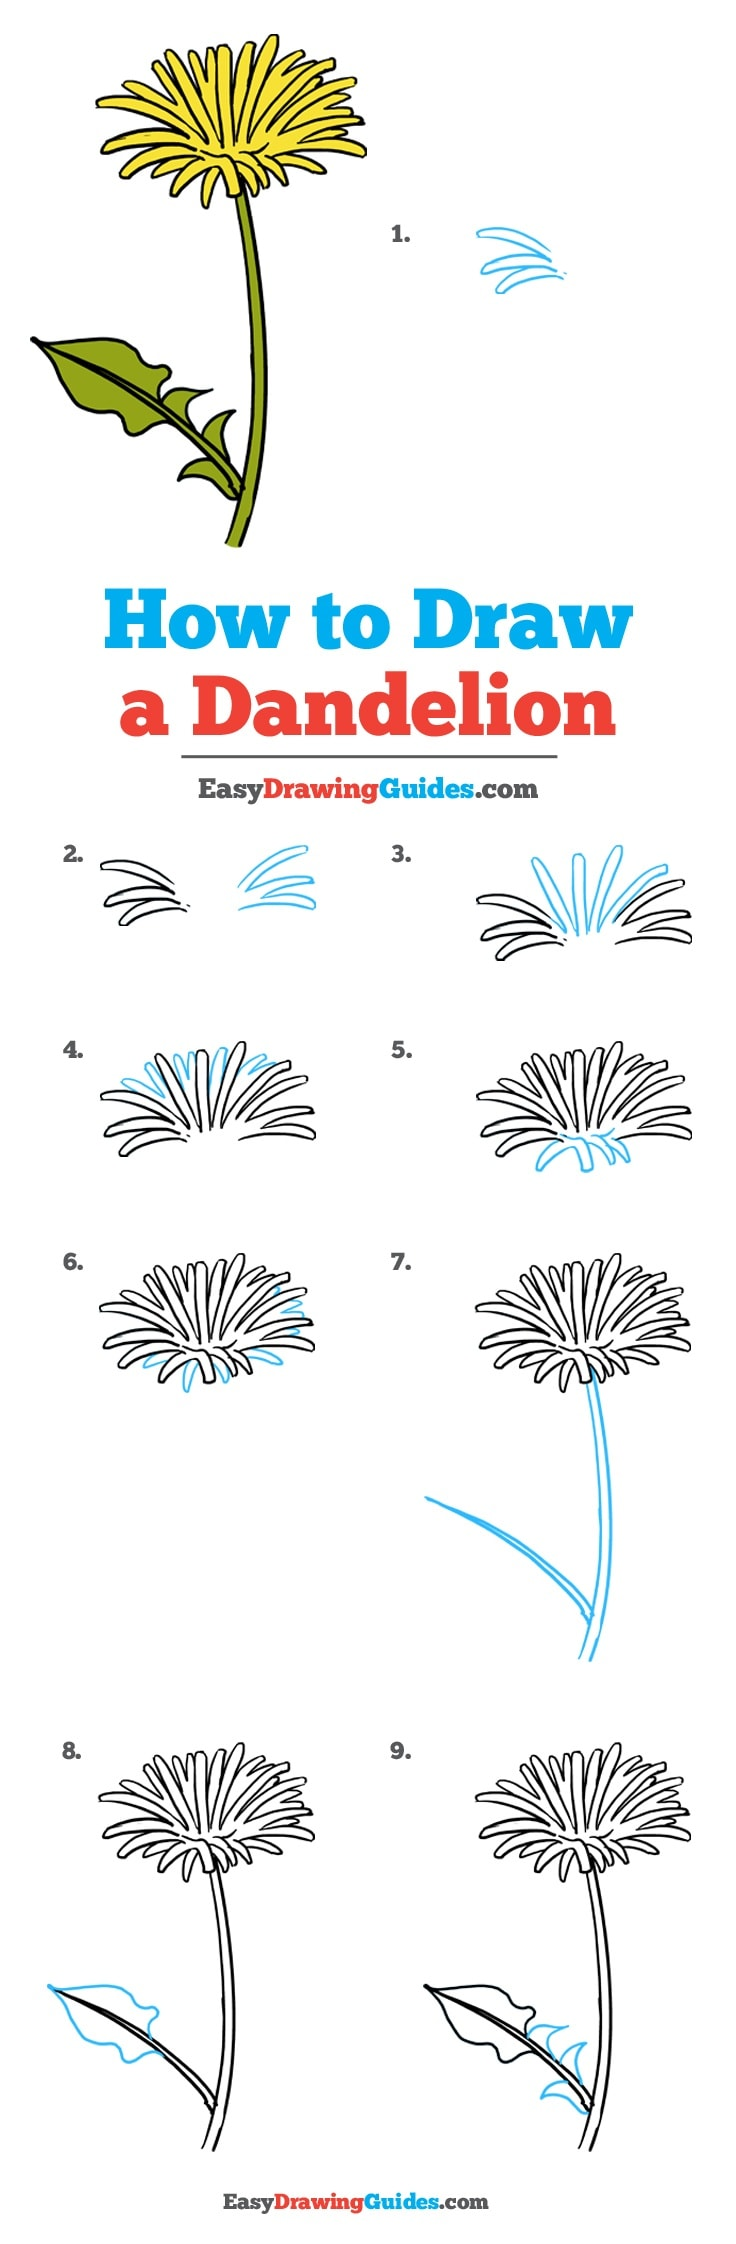 How to Draw Dandelion